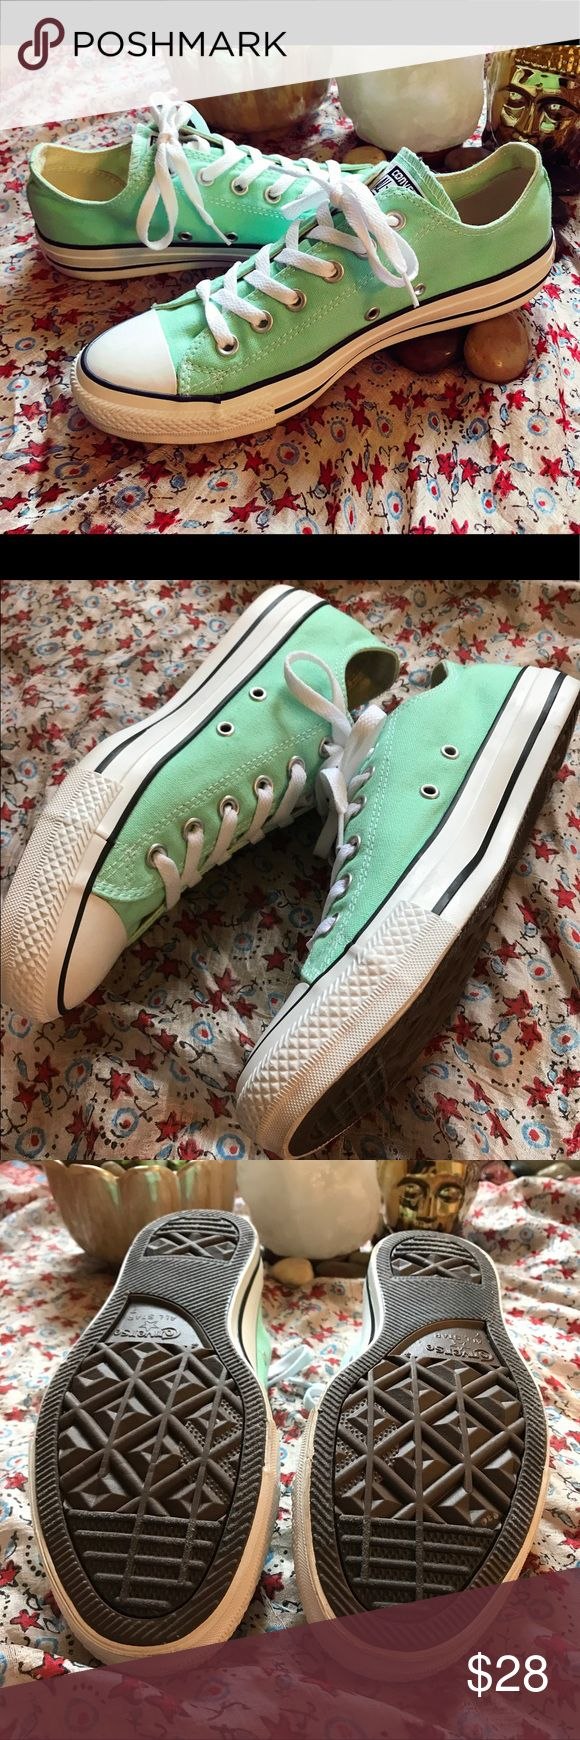 -Worn Once!-Teal-Converse-Size: 9 Woman's- -Teal-Converse-Size: 9 Woman's-I've only worn these shoes once since they are slightly too big on me, I'm a size 8.5 They are in amazing condition! The only sign of wear is a tiny scruff on the tip of the shoe, but hardly noticeable! (See pictures) This color is absolutely beautiful for the summer time!☀️Length: 11 in. long. Converse Shoes Sneakers